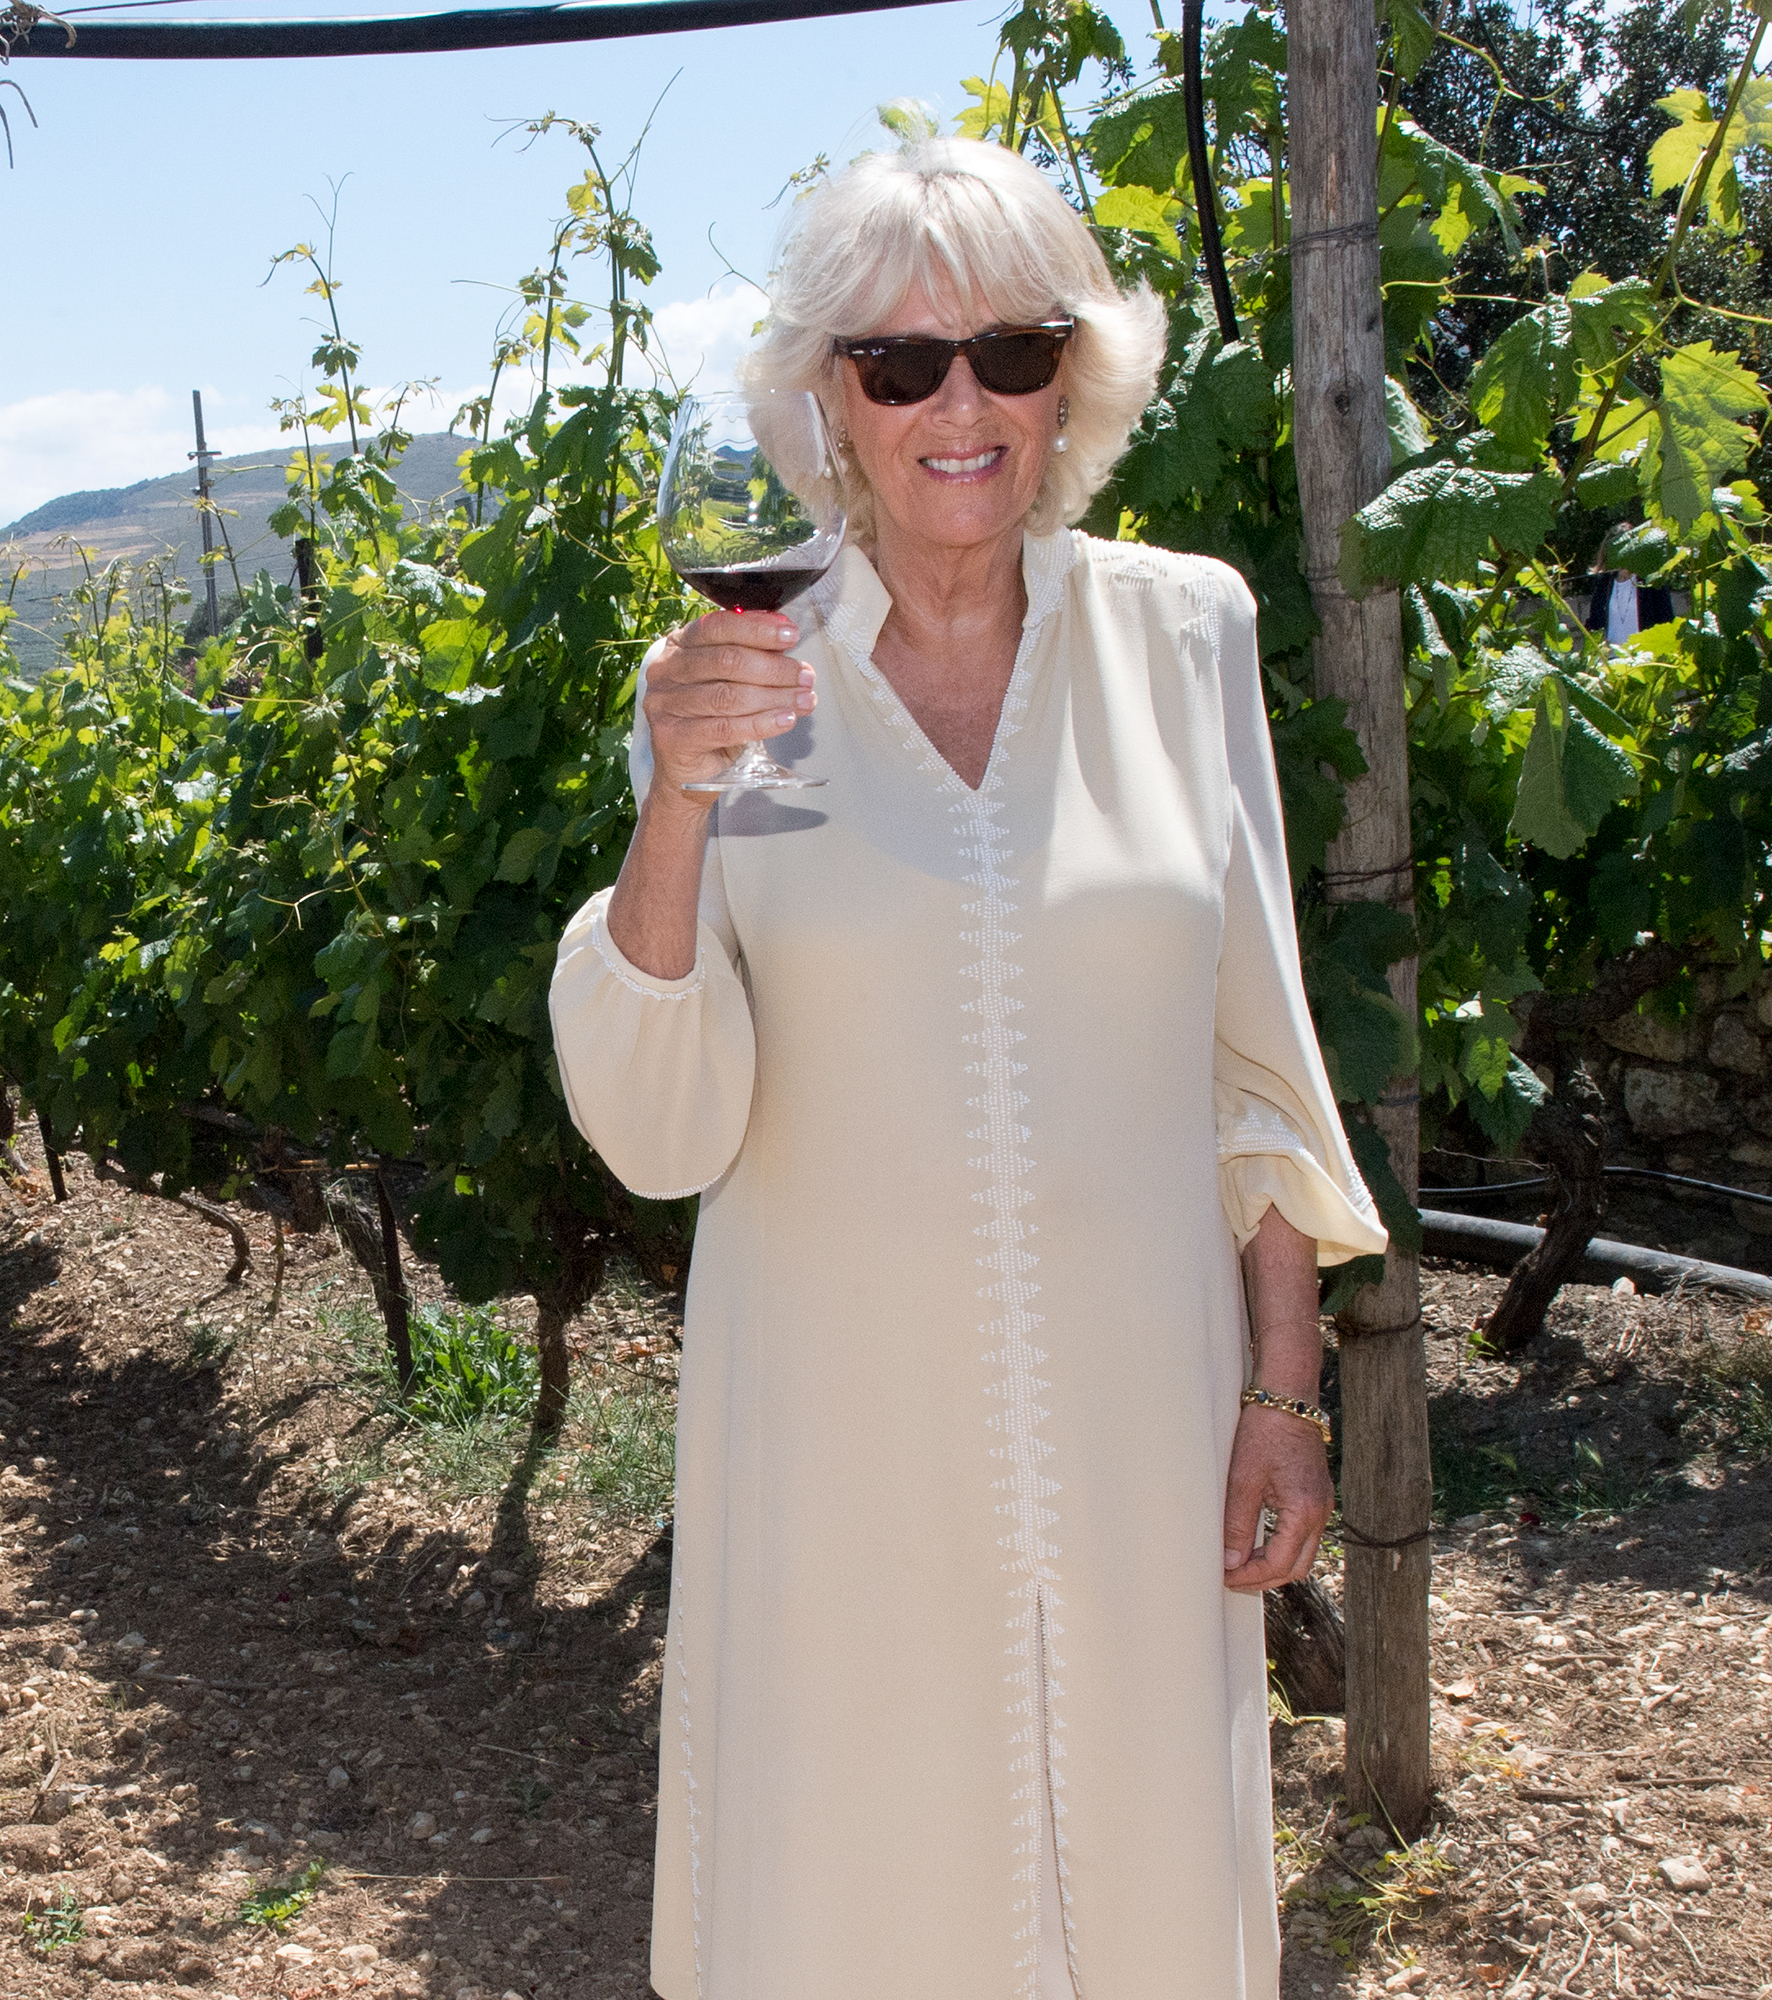 Prince Of Wales And Duchess Of Cornwall Visit Greece